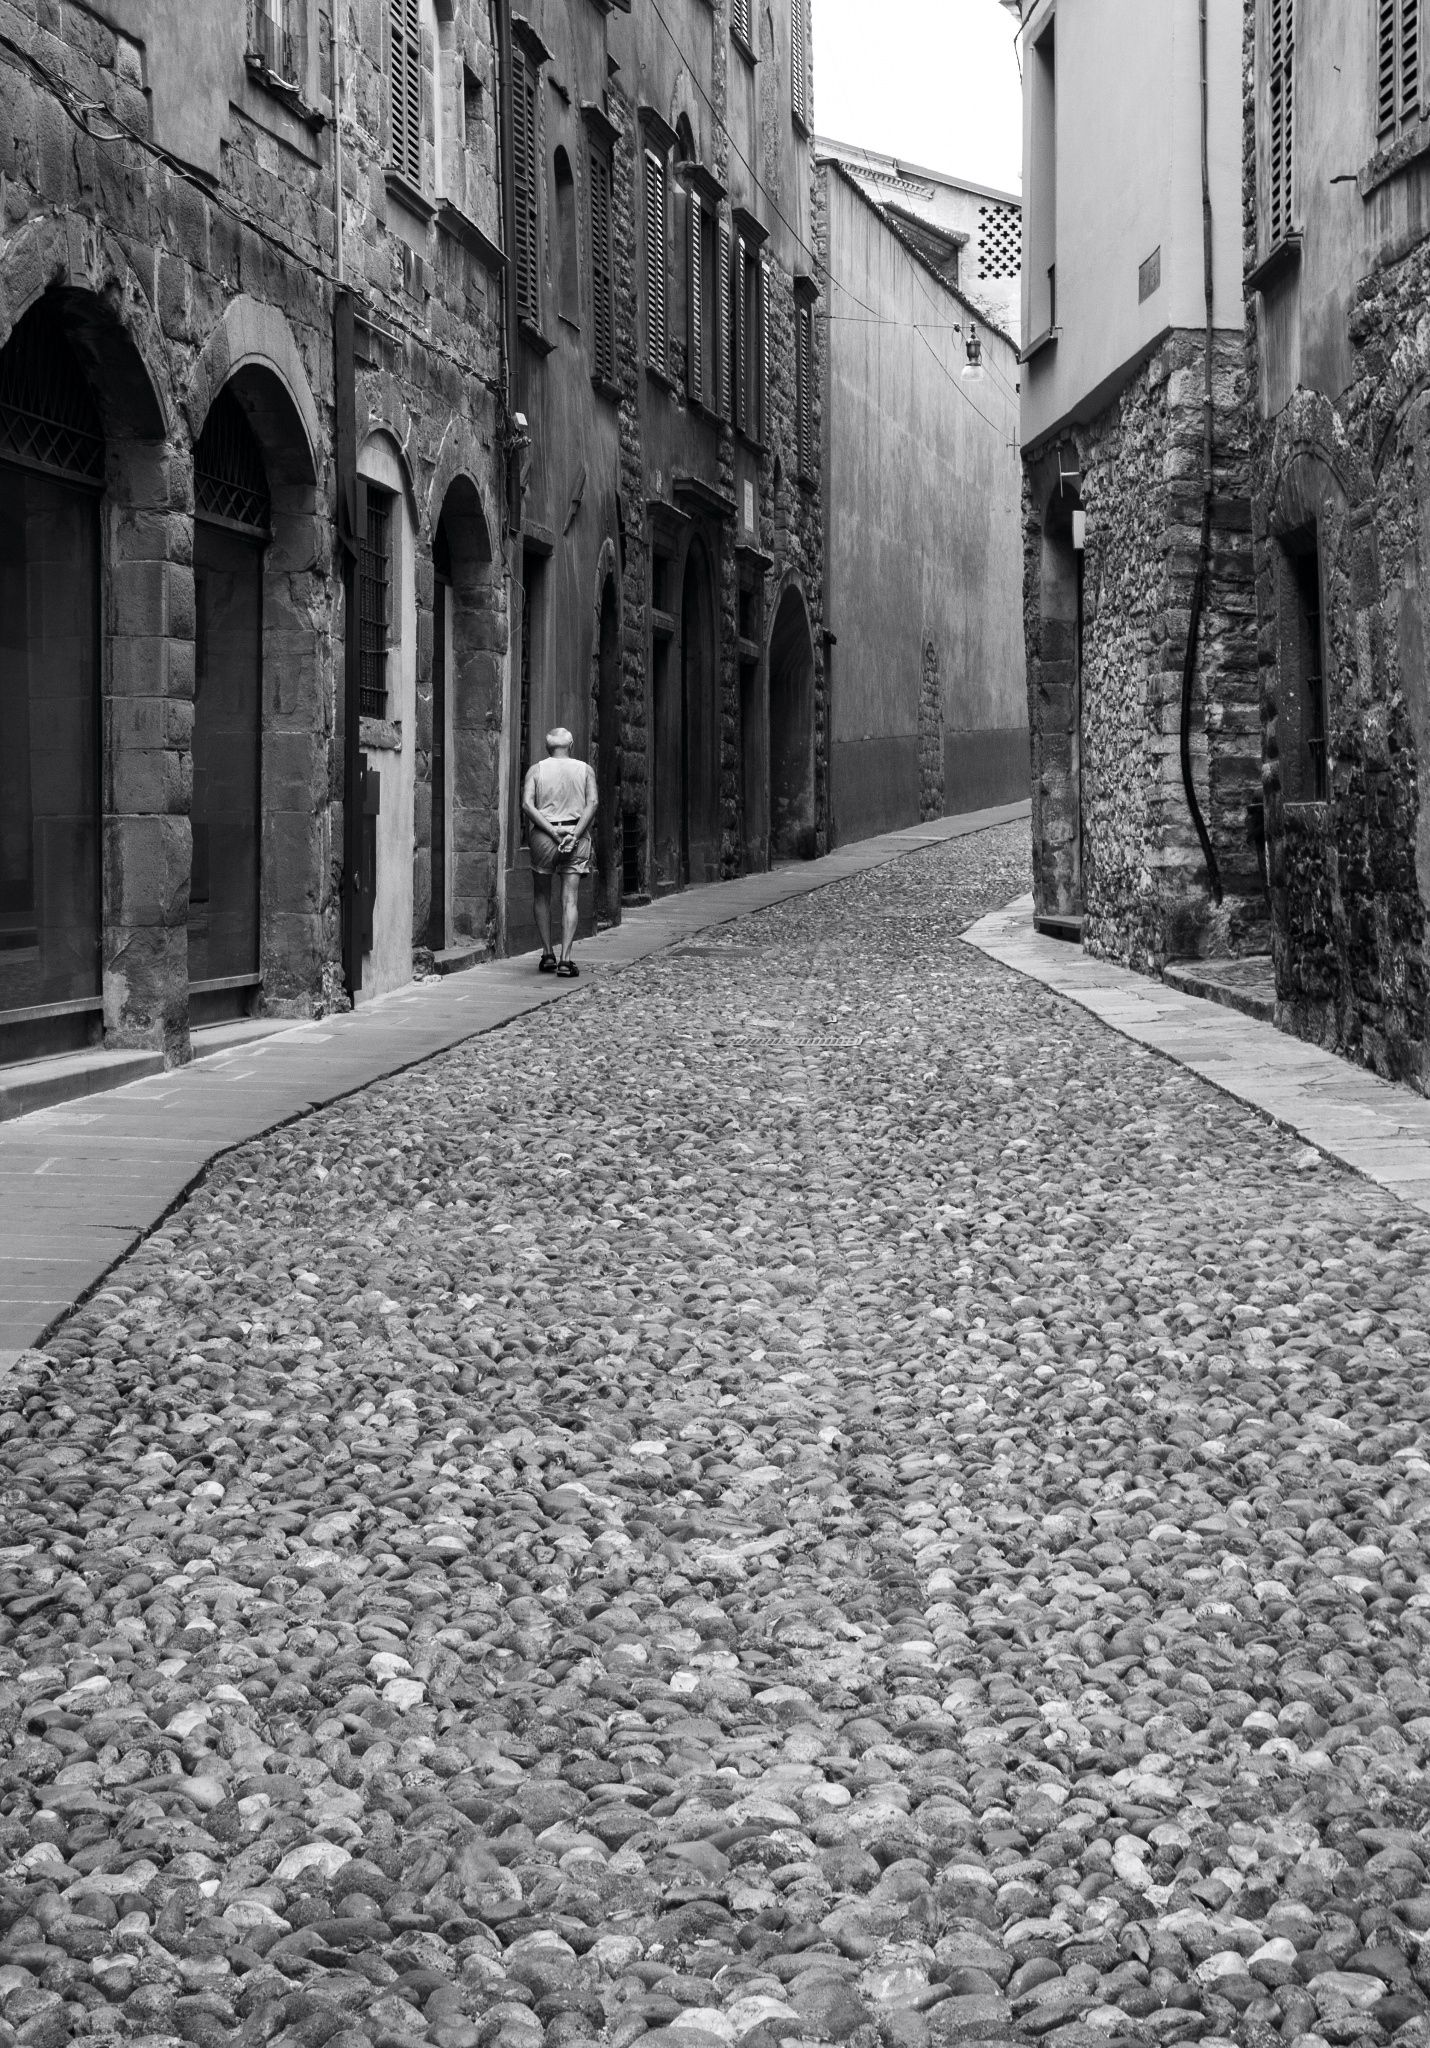 Walking on the street in the old city of Bergamo